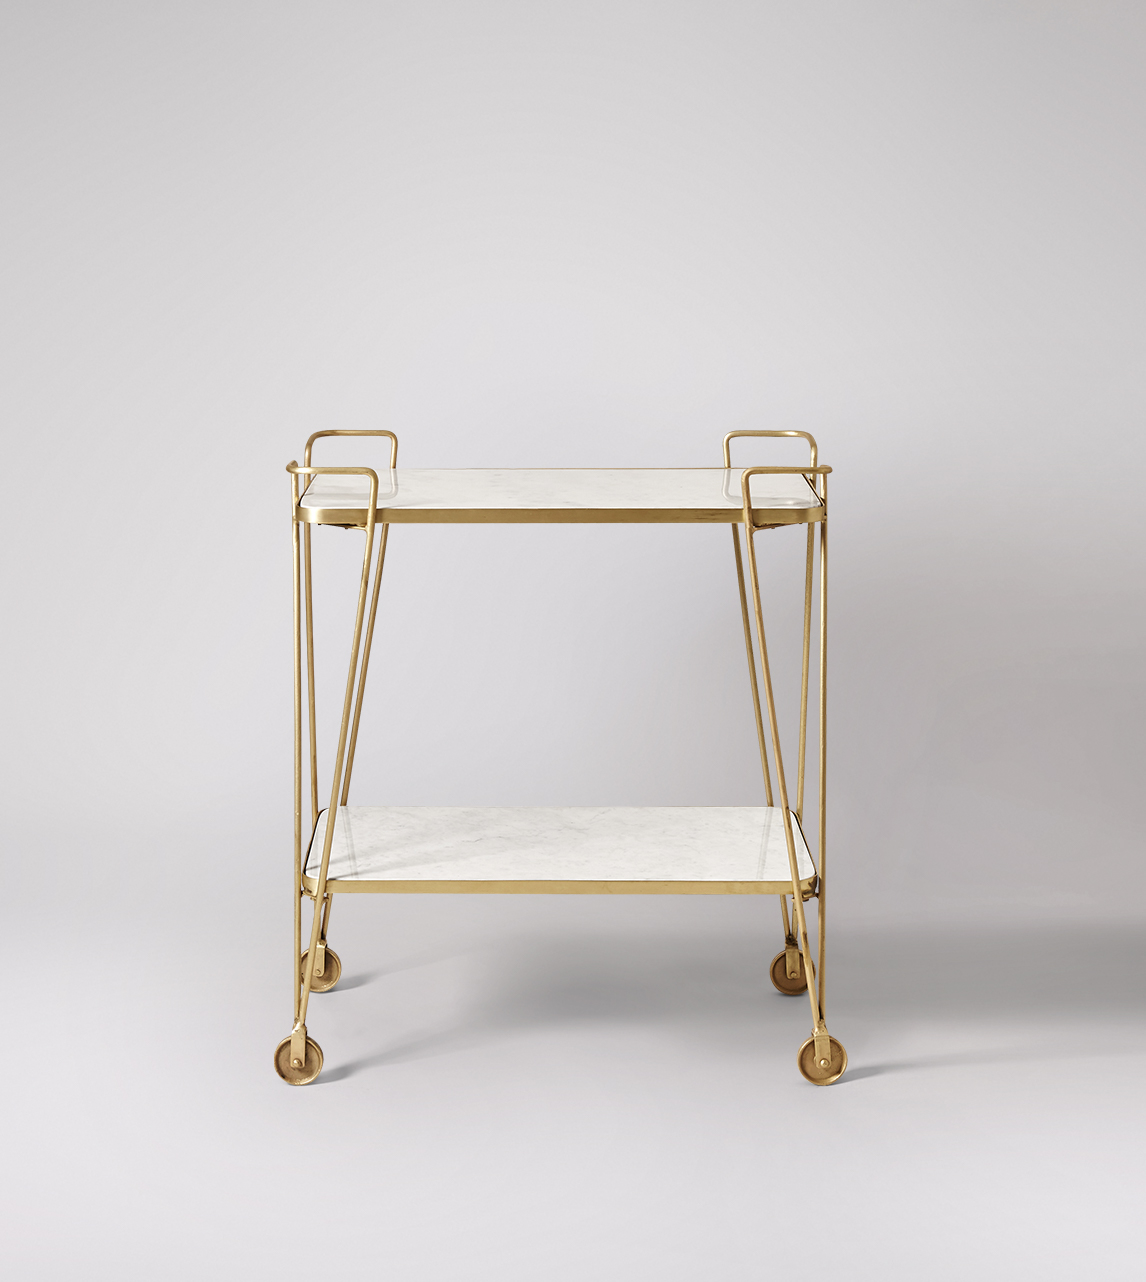 Trolley, Art Deco style in Brass & White Marble | Swoon